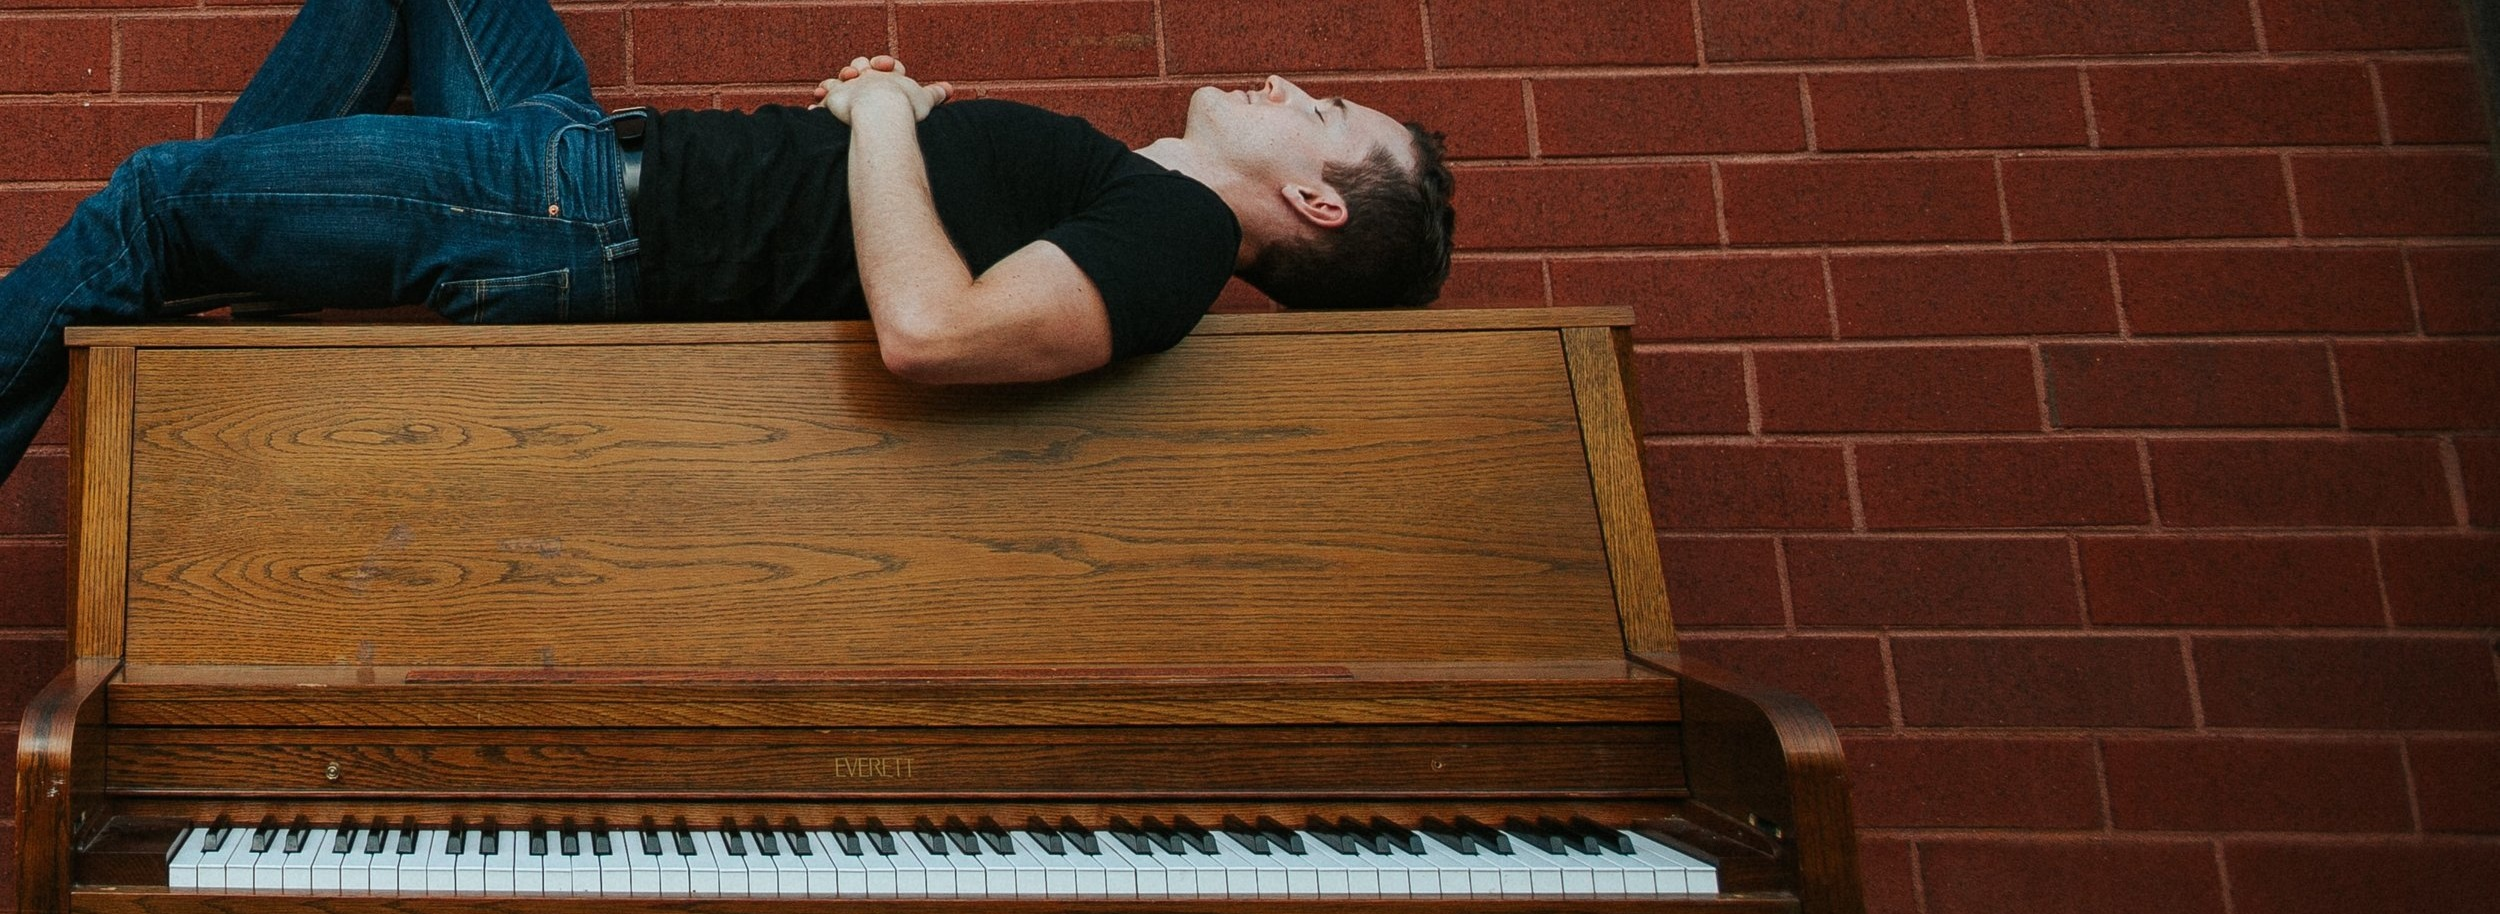 John Burke: The Composer Concert - From piano to video game music, hear the Grammy-nominated composer's new and known works in a brand new kind of concert.